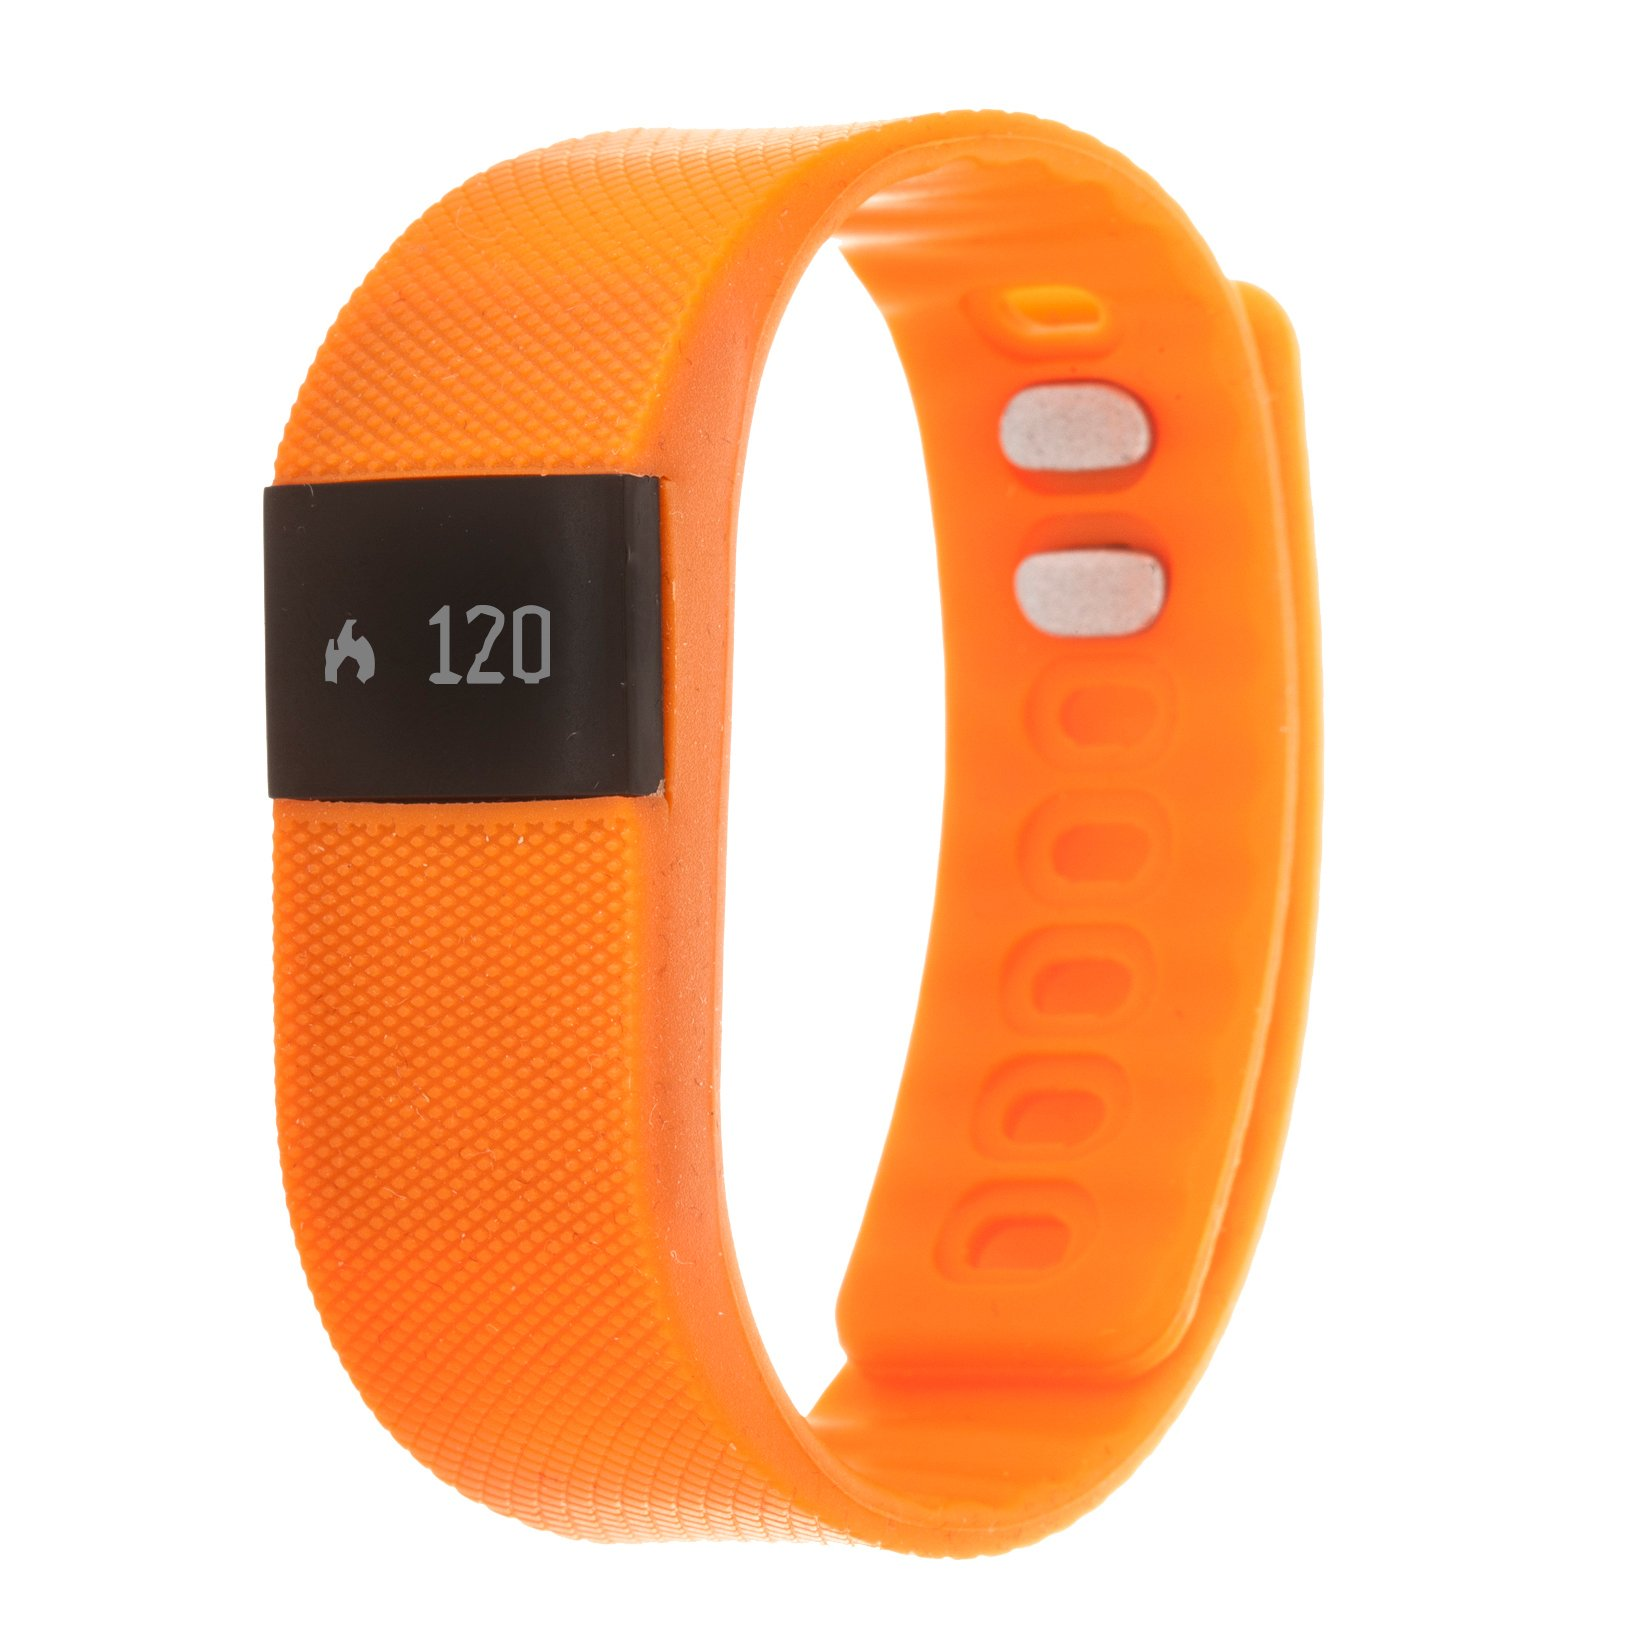 Zunammy Women's 'Activity Tracker with Call and Message Reminders' Automatic Plastic and Rubber Smart Watch, Color Orange (Model: NWTR021OR)